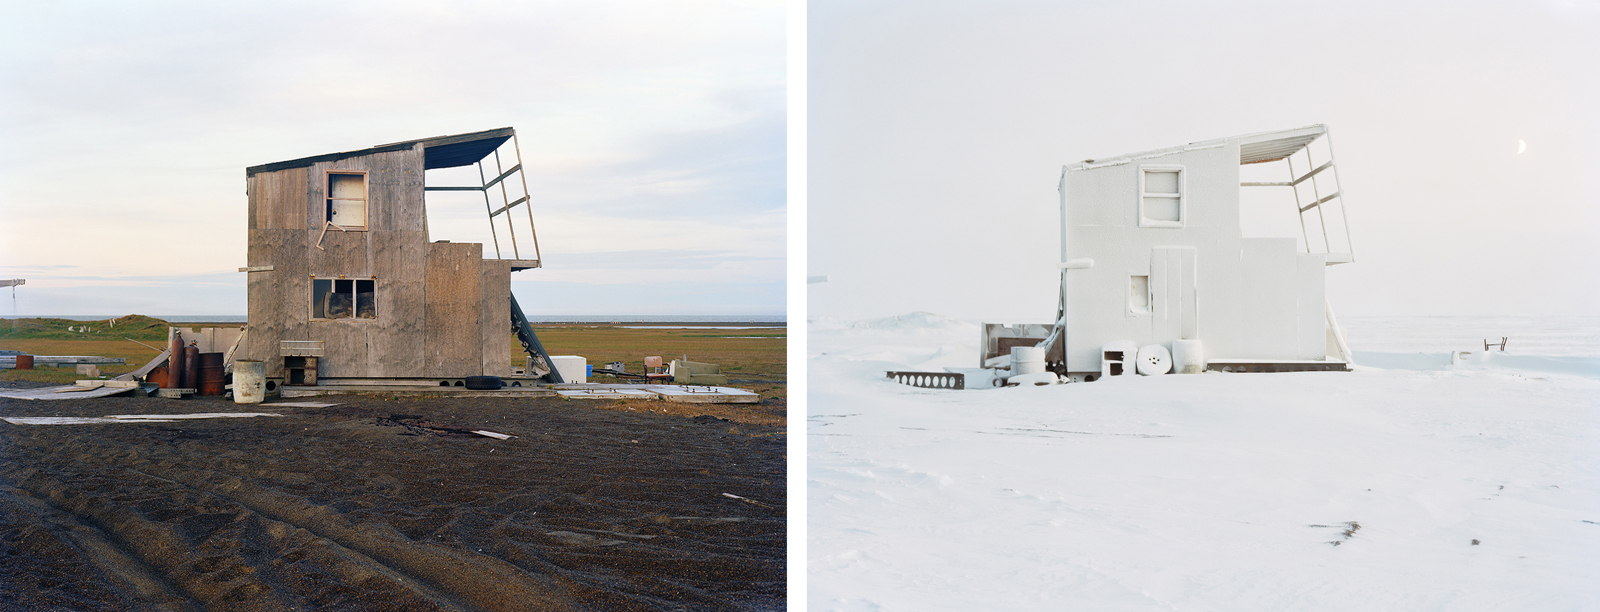 Hunting cabins in Barrow, Alaska photographed by Eirik Johnson